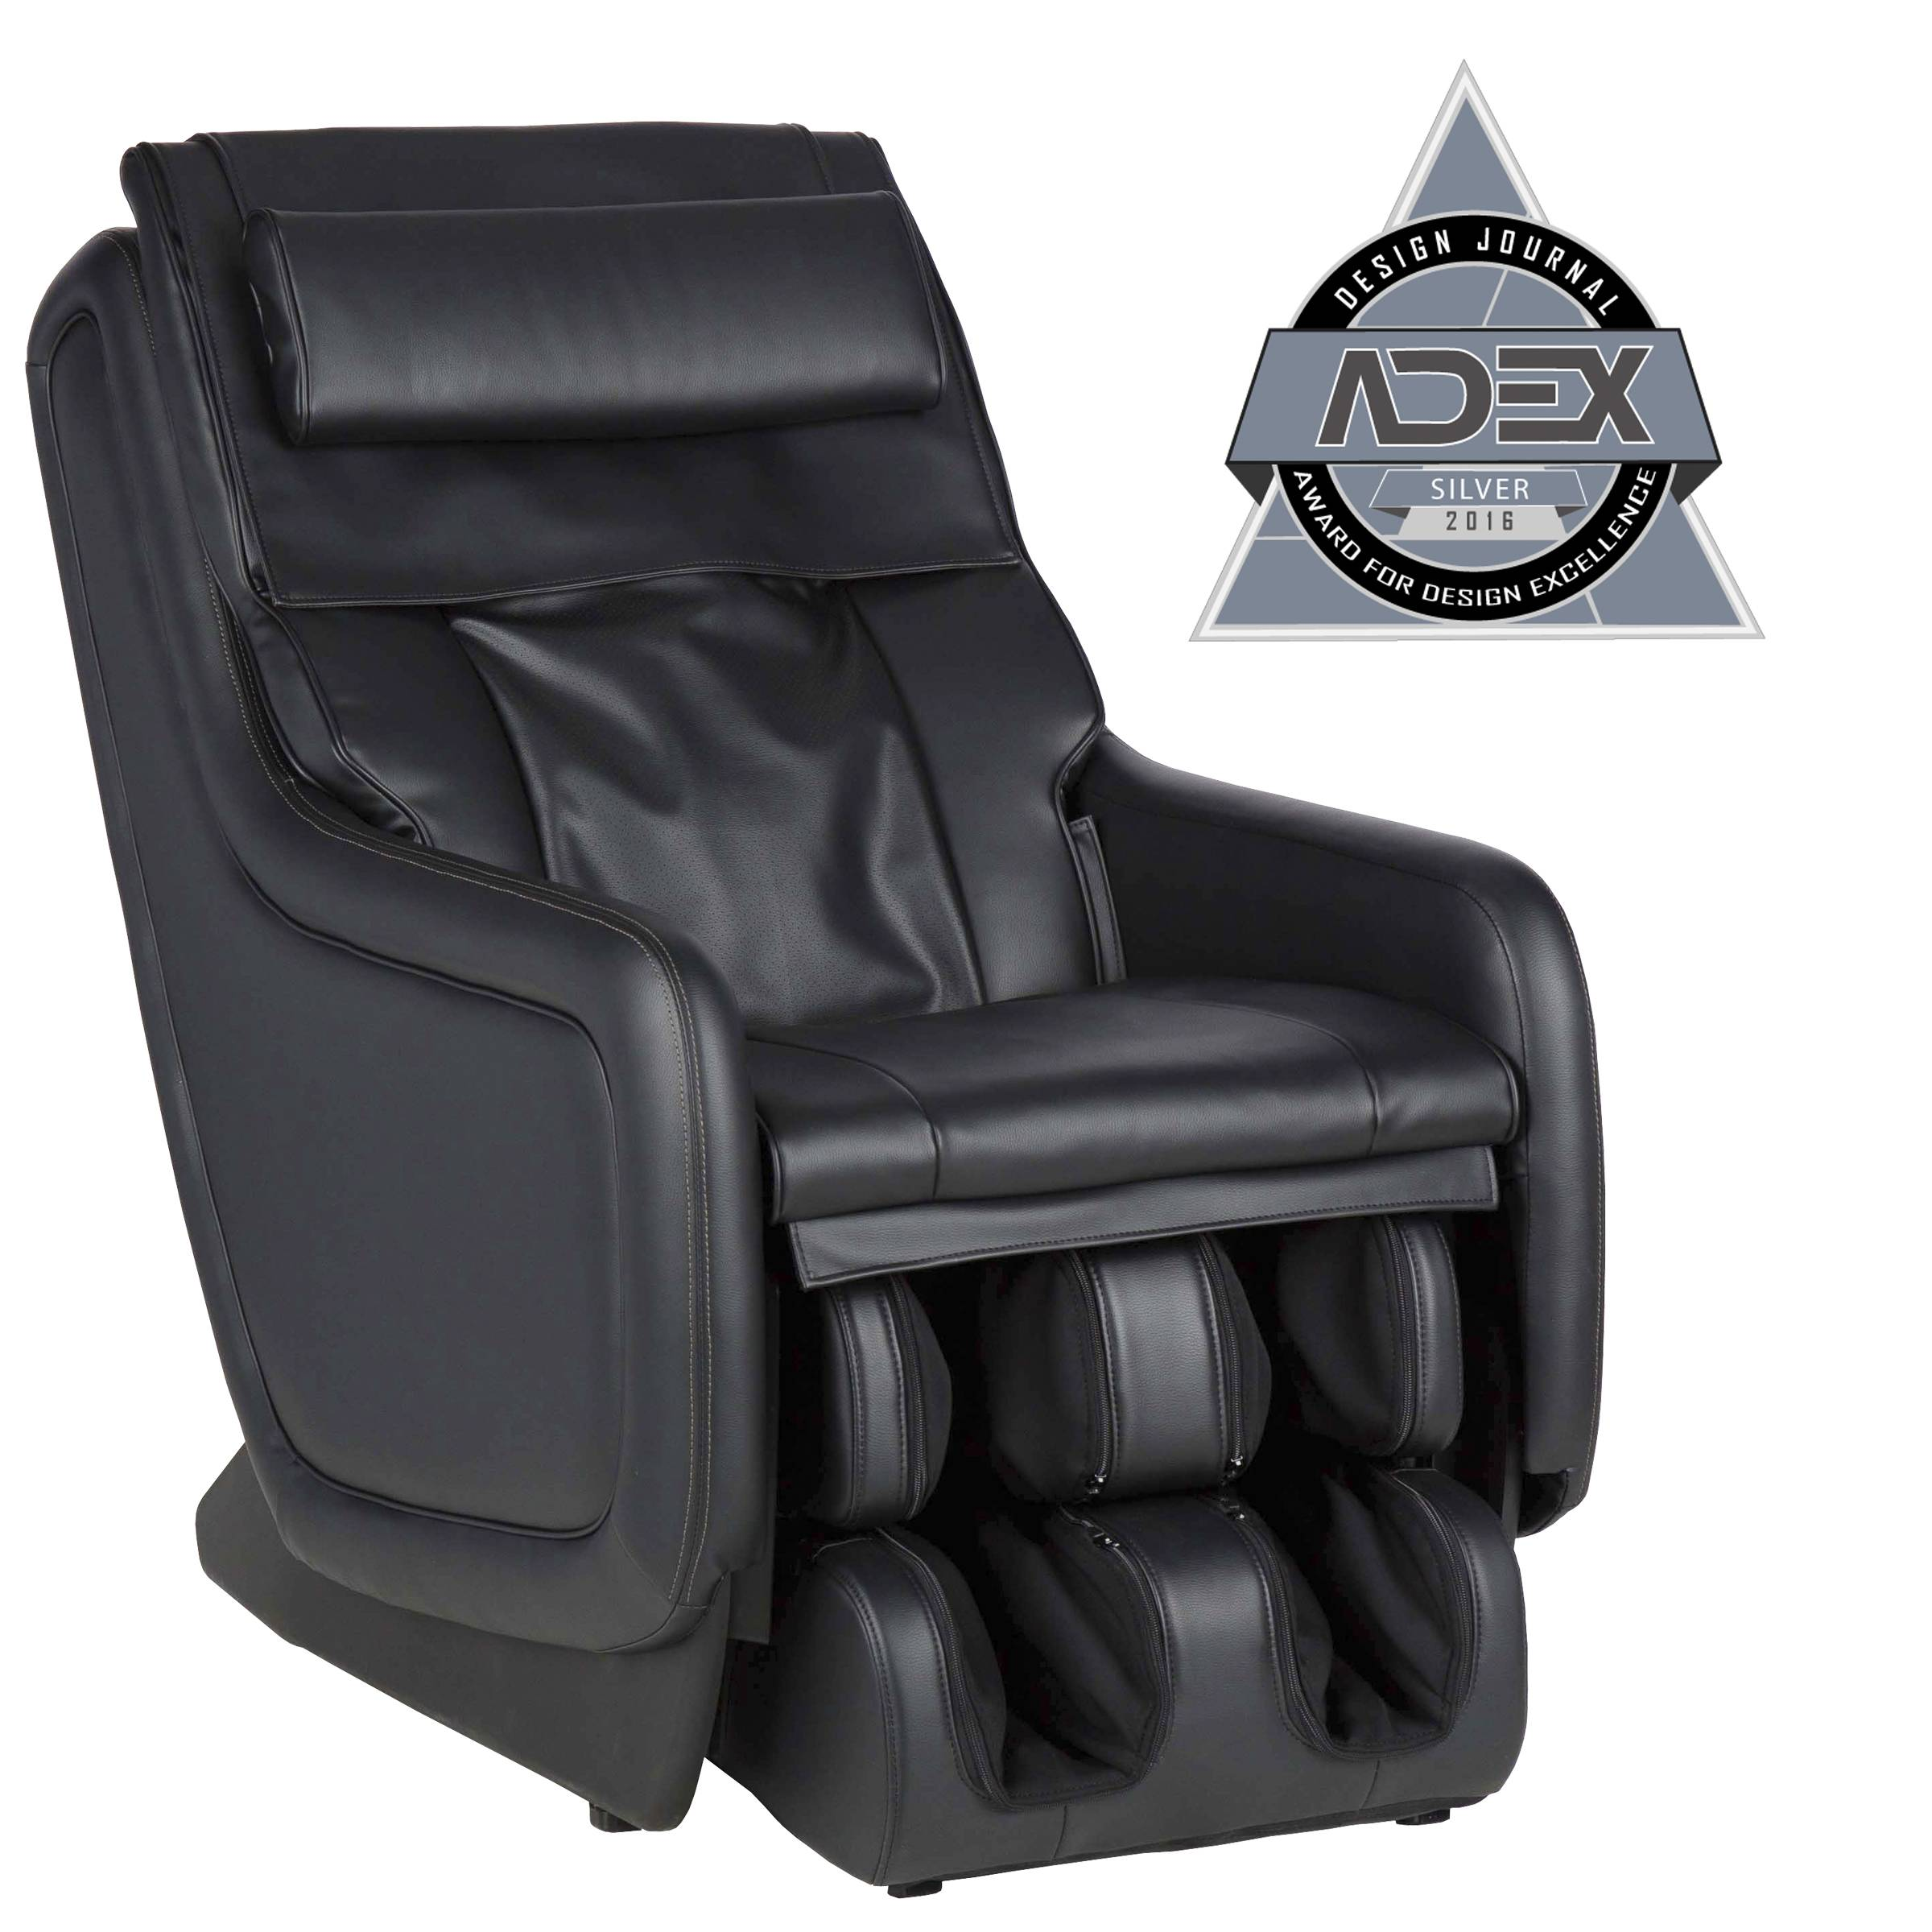 ZeroG 5.0 Massage Chair